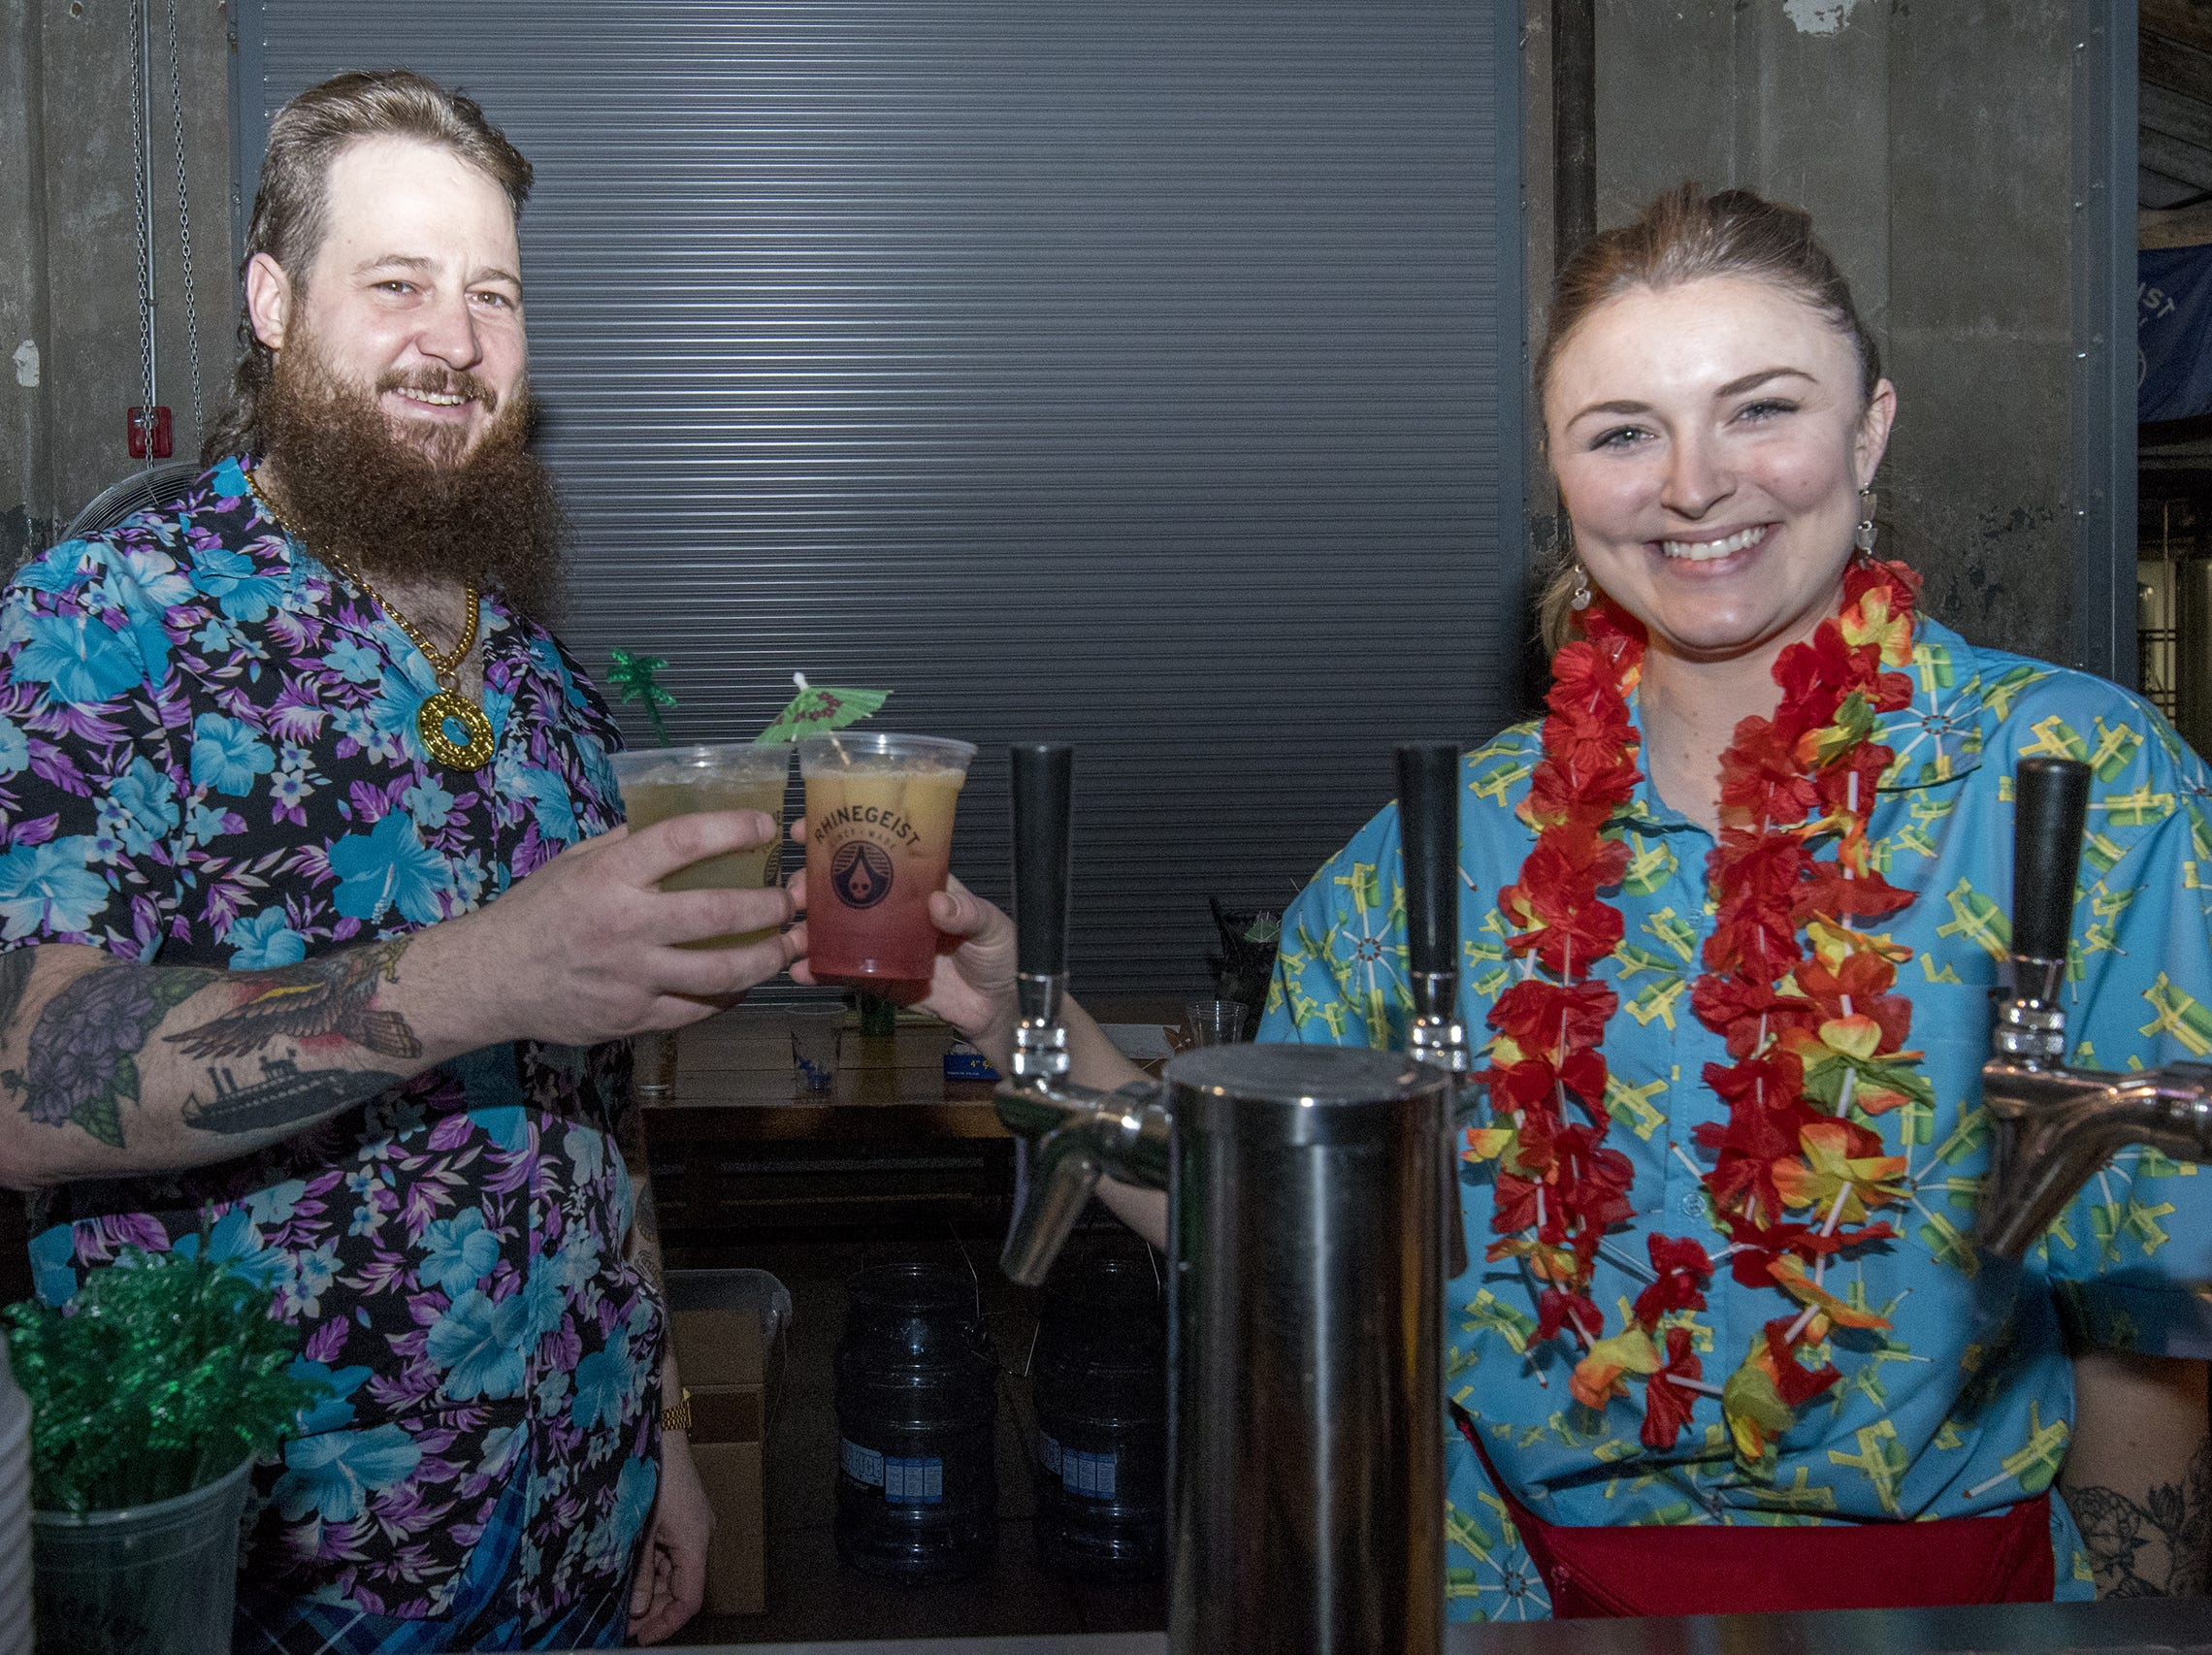 Rhinegiest employees Joe Vogel and Aislinn Brown toast with the fruit-infused beverages served at the tropical disco.